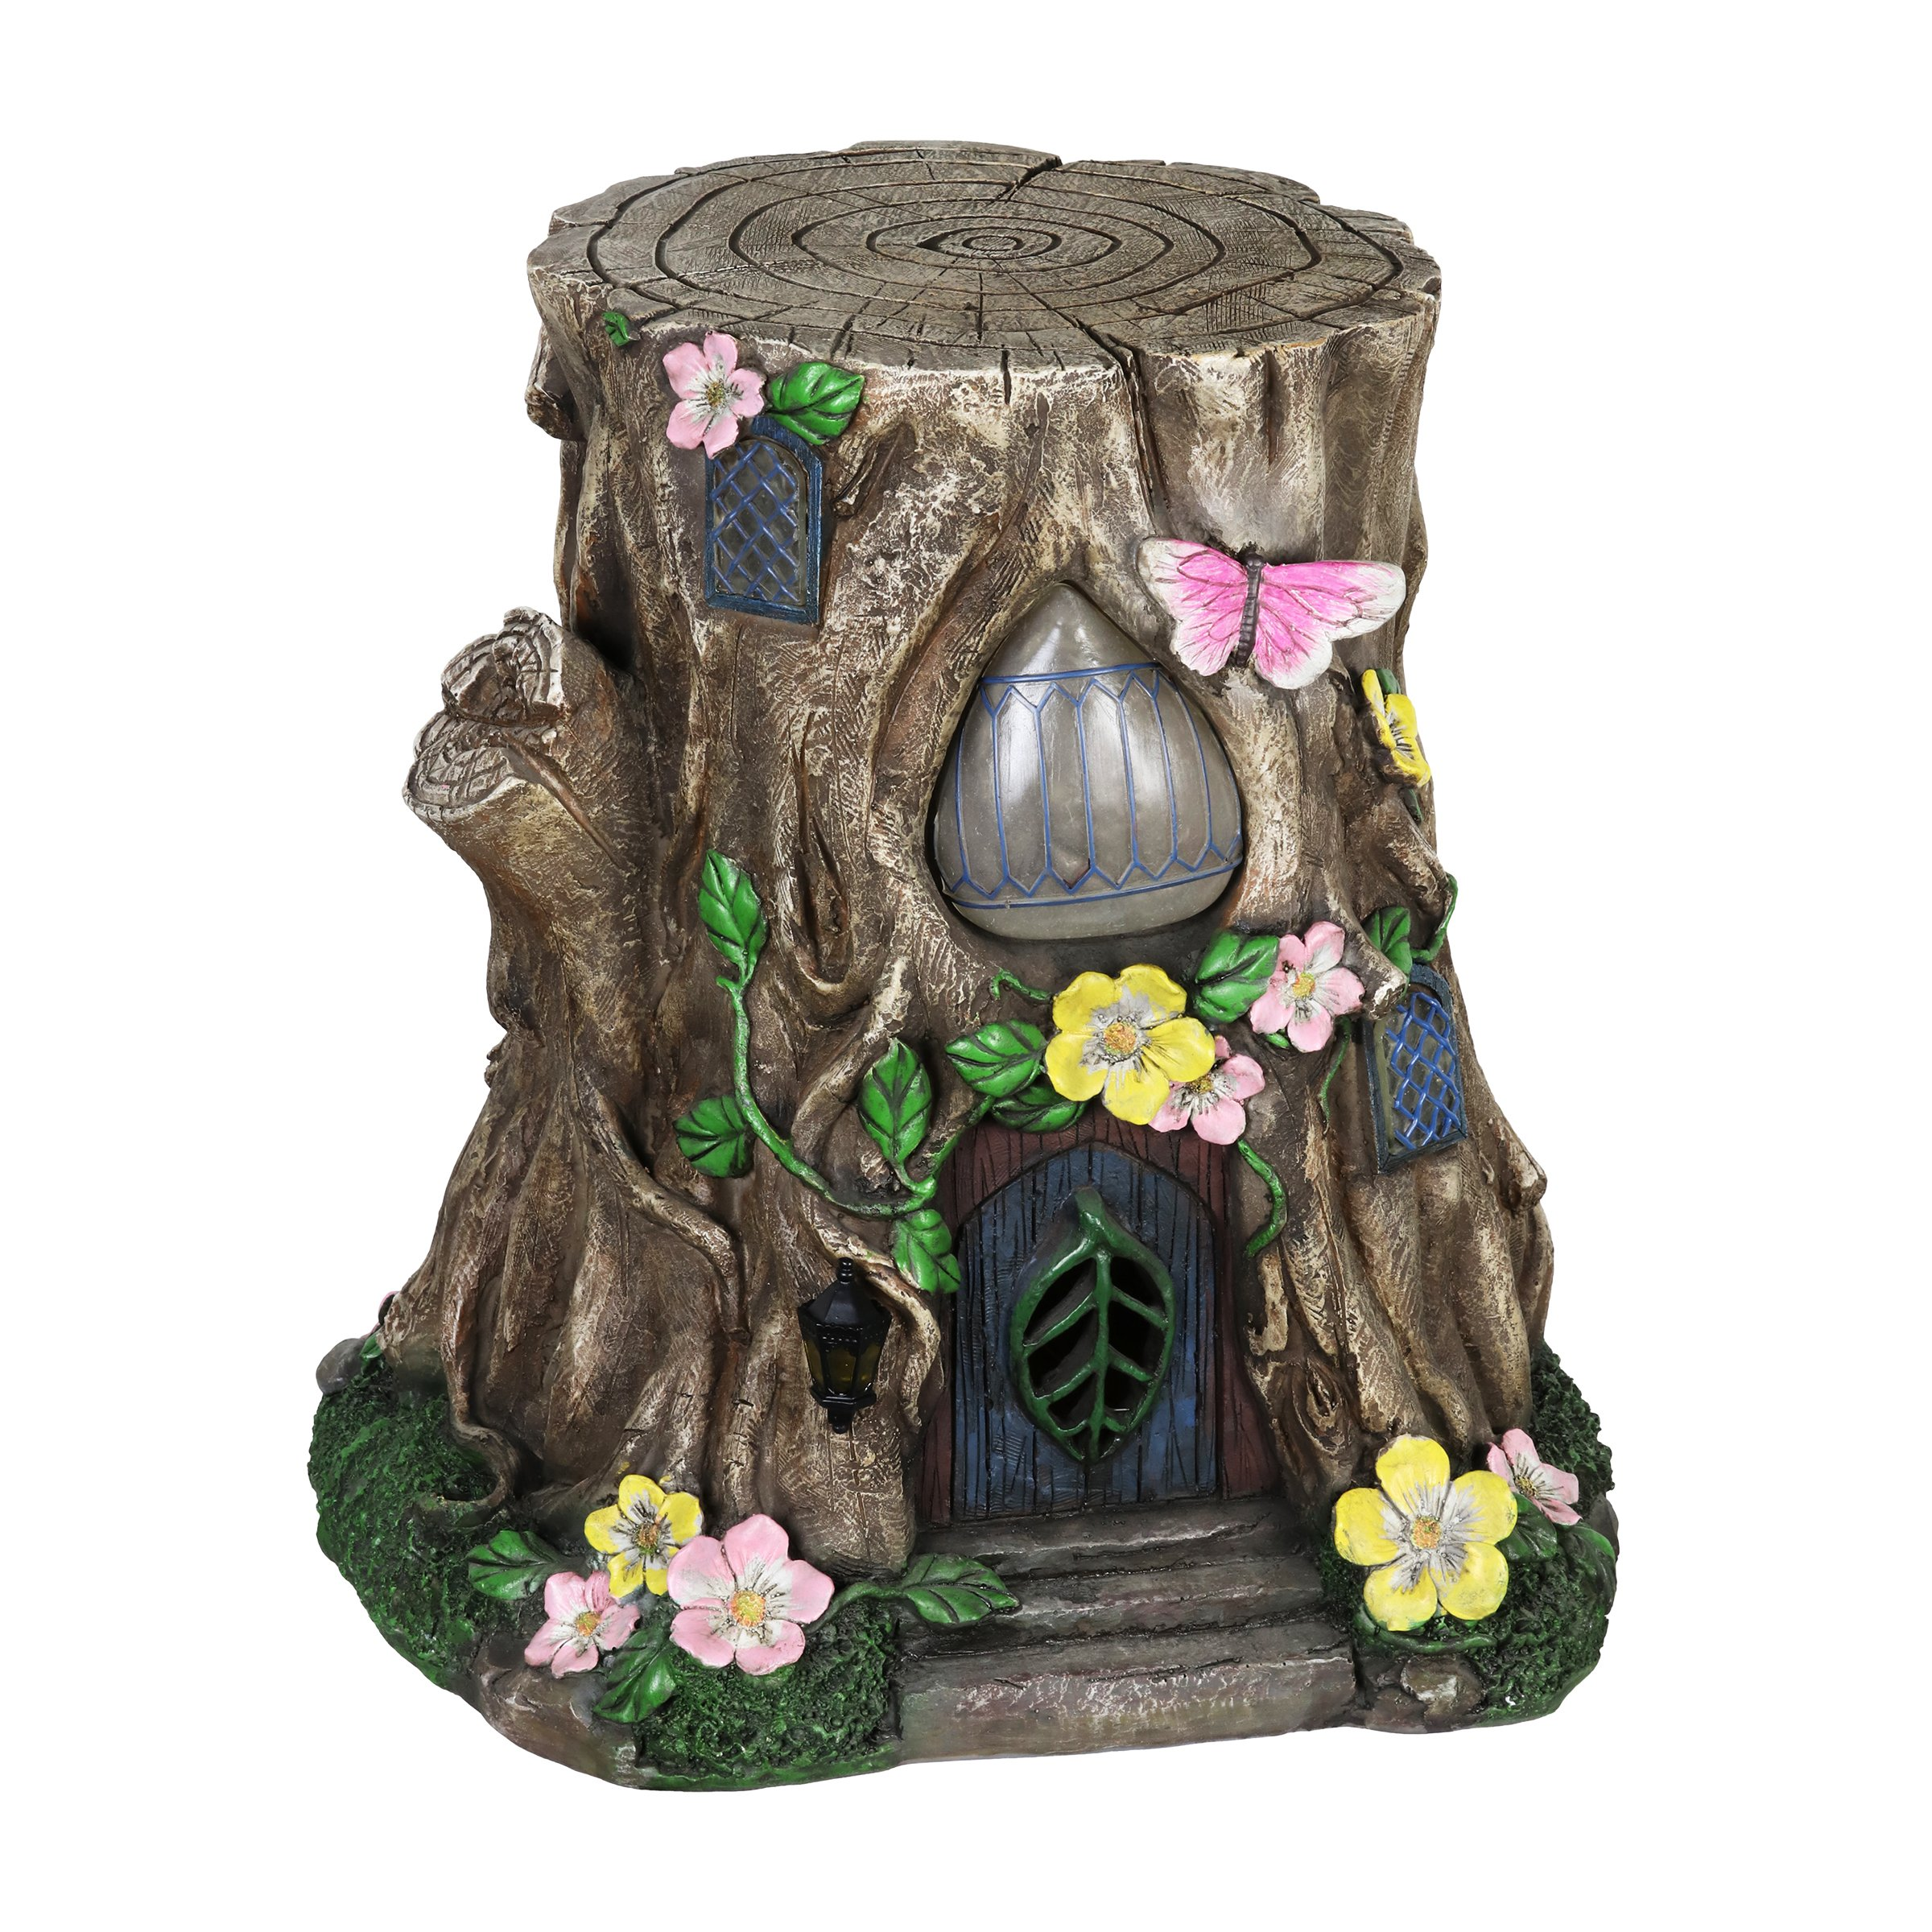 Exhart Gardening Gifts –Fairy House Tree Stump Statue - Large Garden Statues w/Solar Garden Lights, Outdoor Use, Fairy Themed Garden Décor, Weather Resistant Resin Statues by Exhart (Image #5)